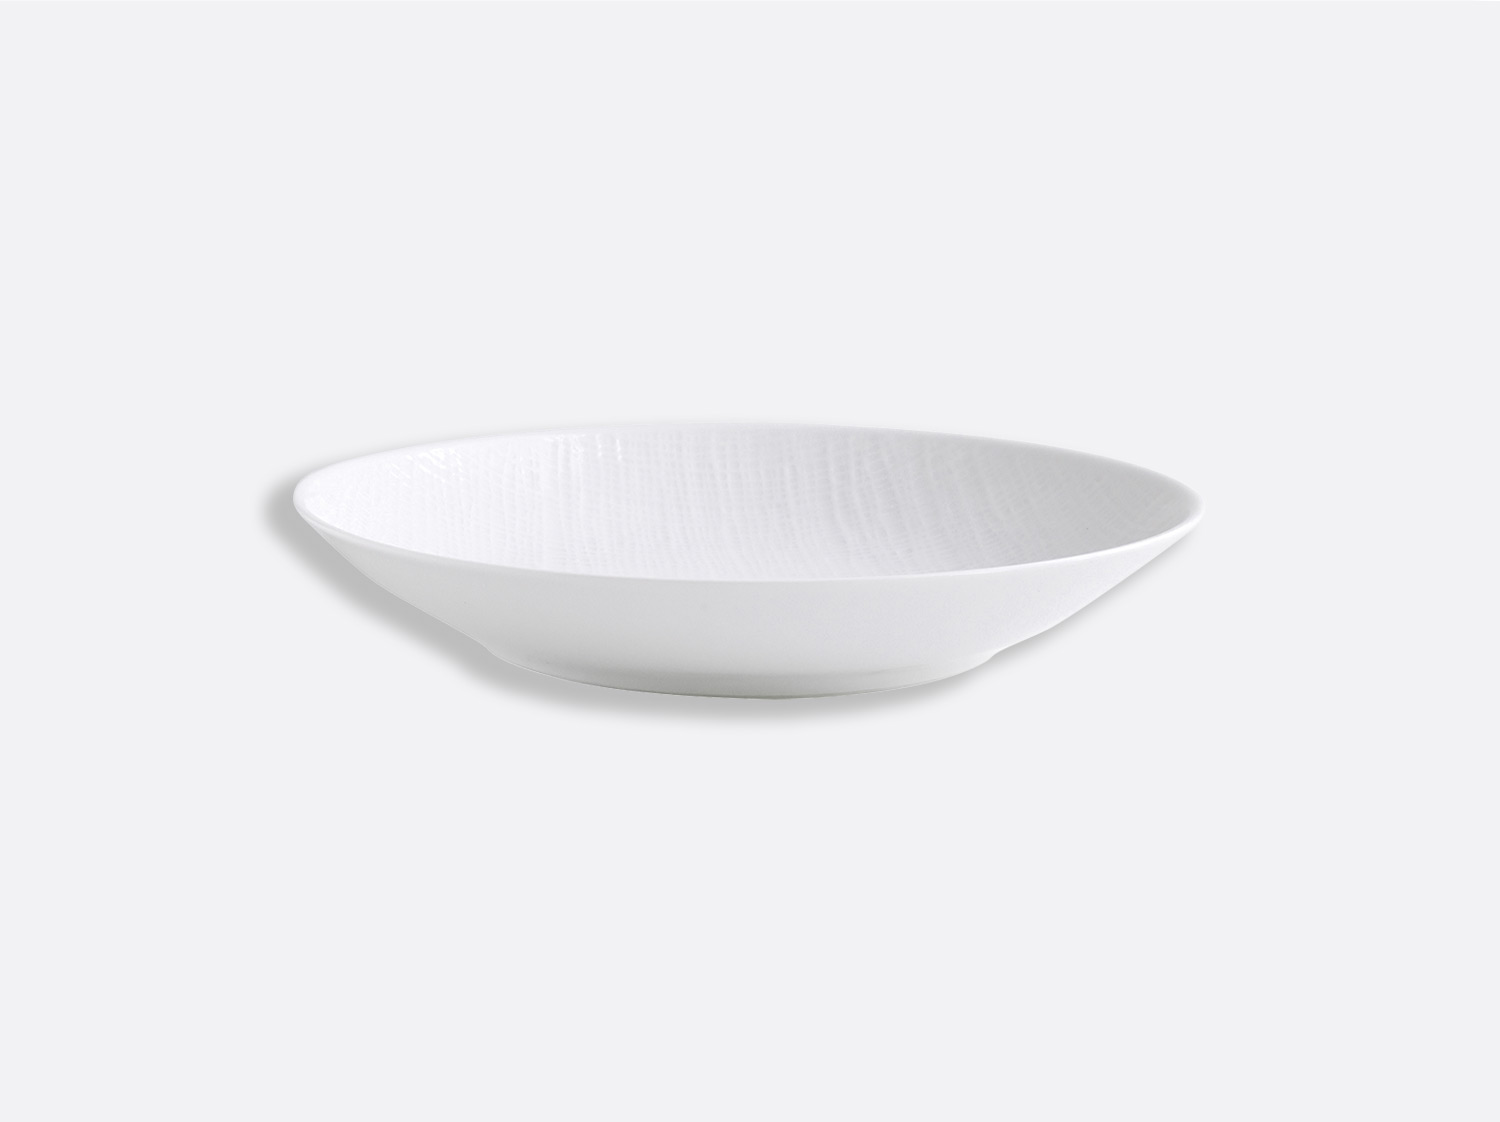 Assiette à pâtes 23 cm en porcelaine de la collection Organza Bernardaud